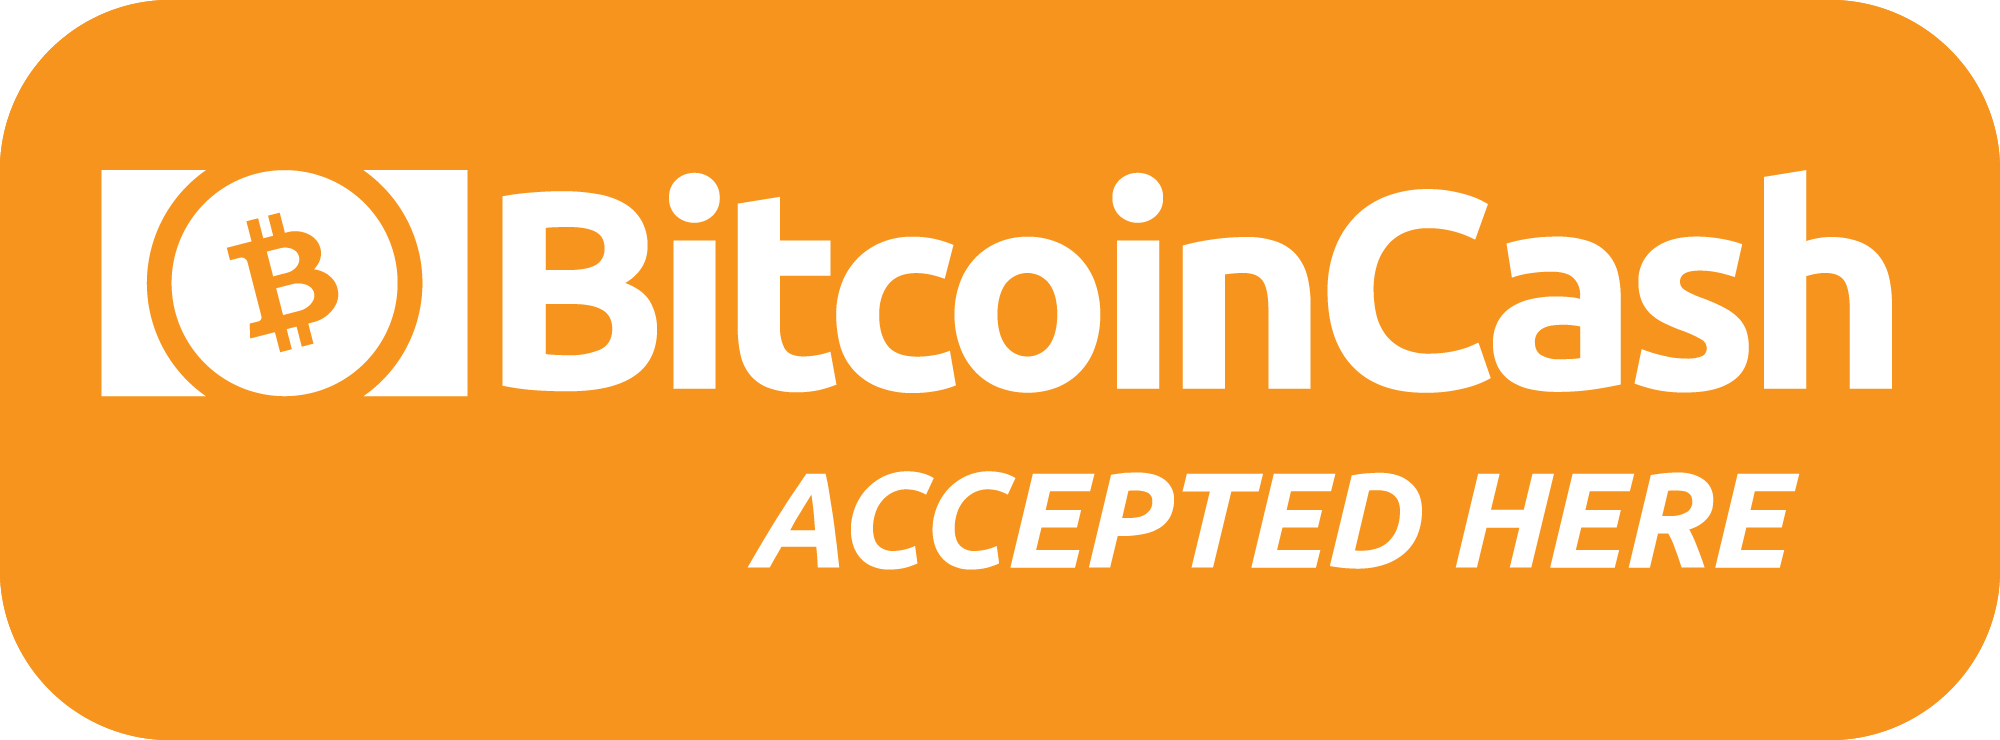 Bitcoin Cash Accepted